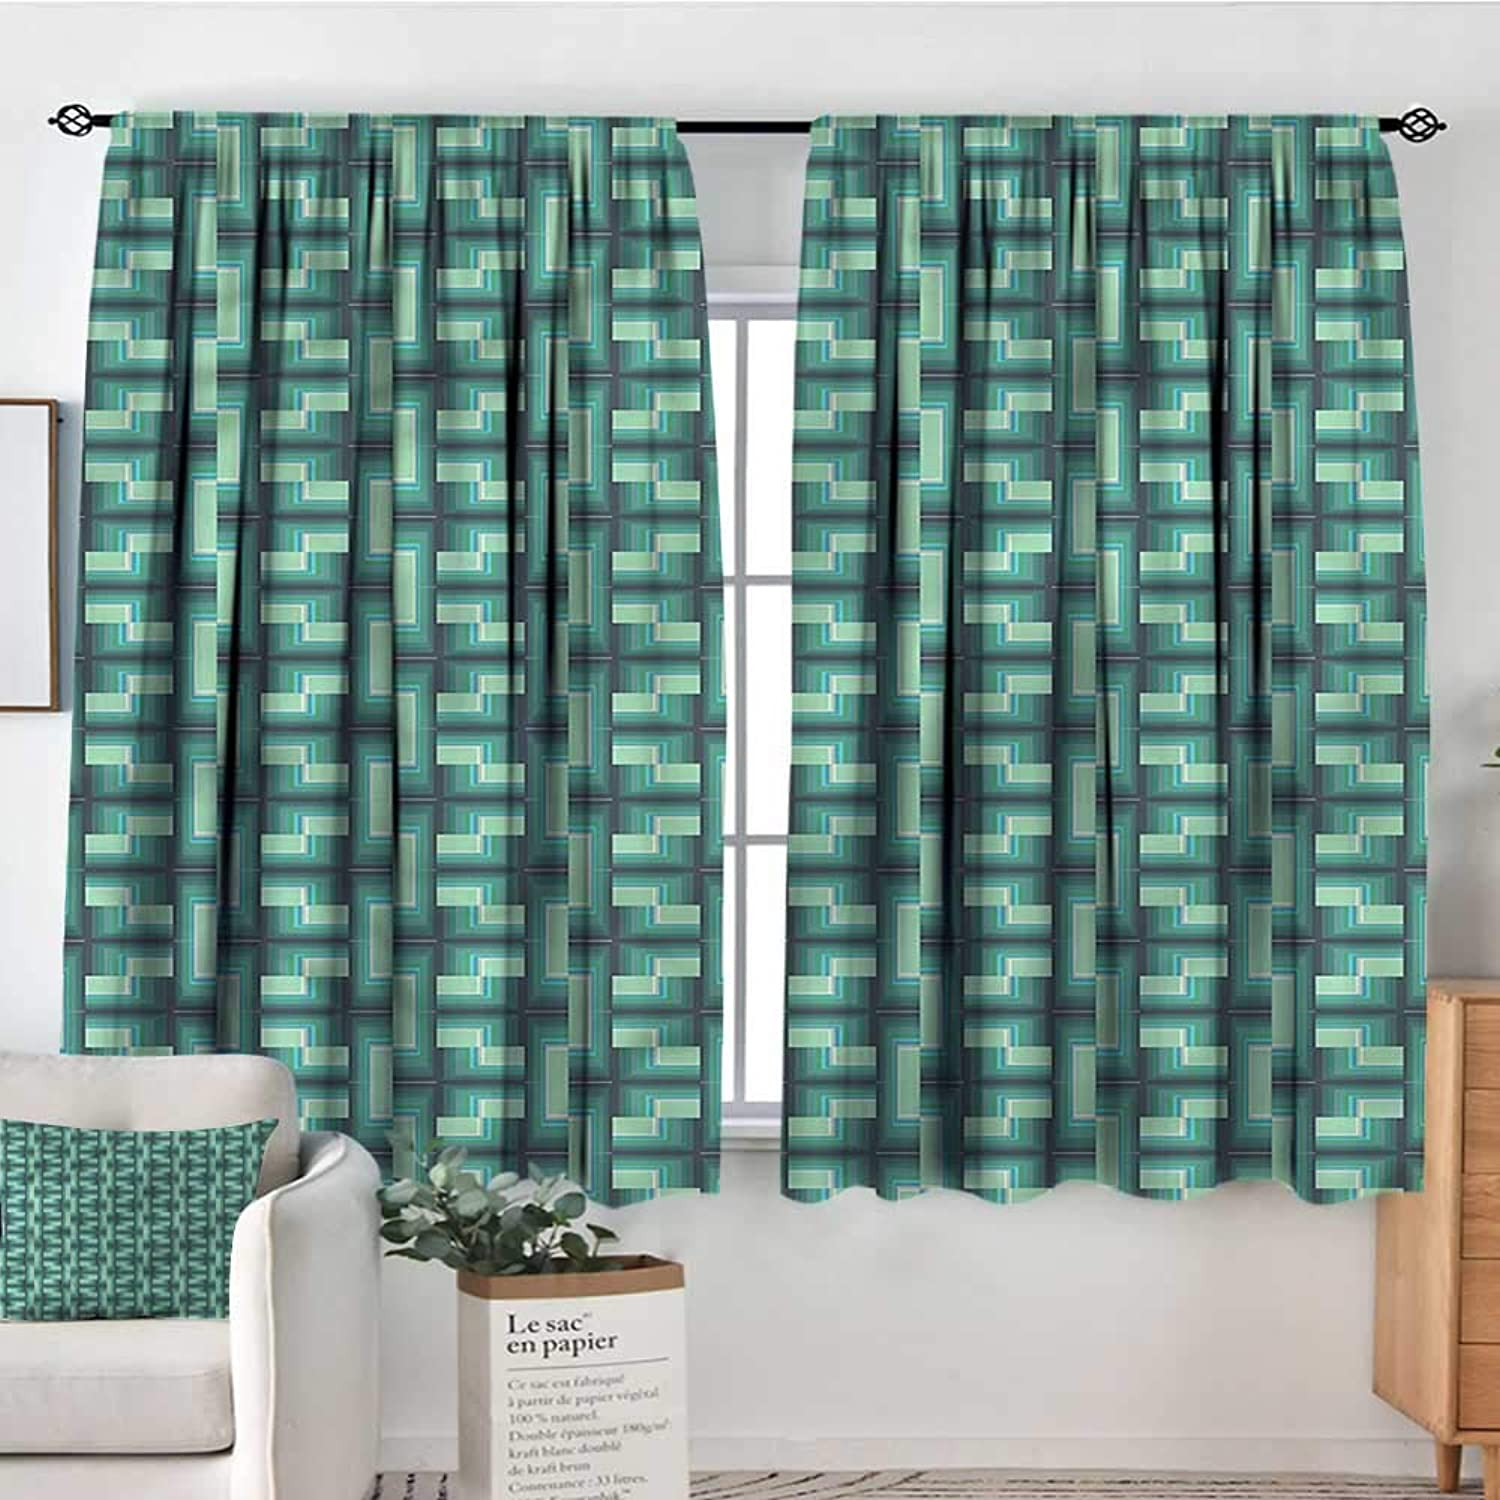 Sanring Geometric,Printed Backout Curtains Optical Illusion 42 X63  Nursery and Kids Bedroom Curtain